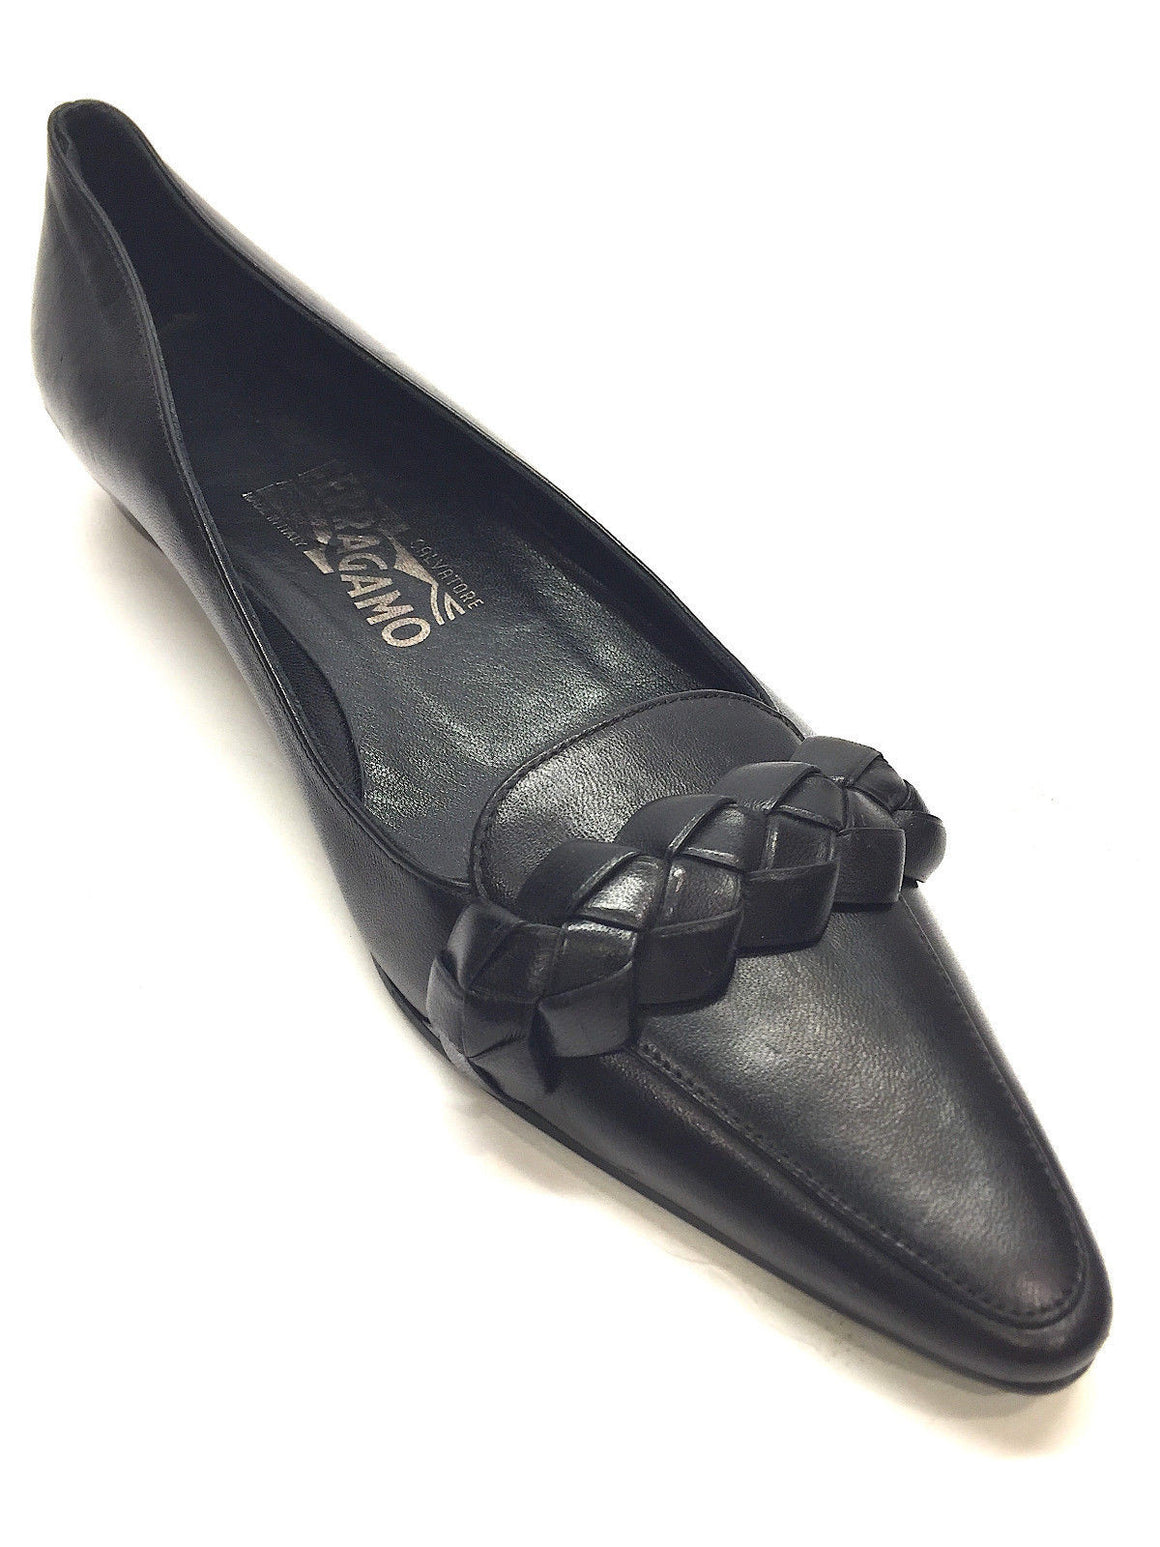 bisbiz.com FERRAGAMO   Black Leather Braided Accent Flat Loafer-Style Shoes Pumps Size: 7AA - Bis Luxury Resale